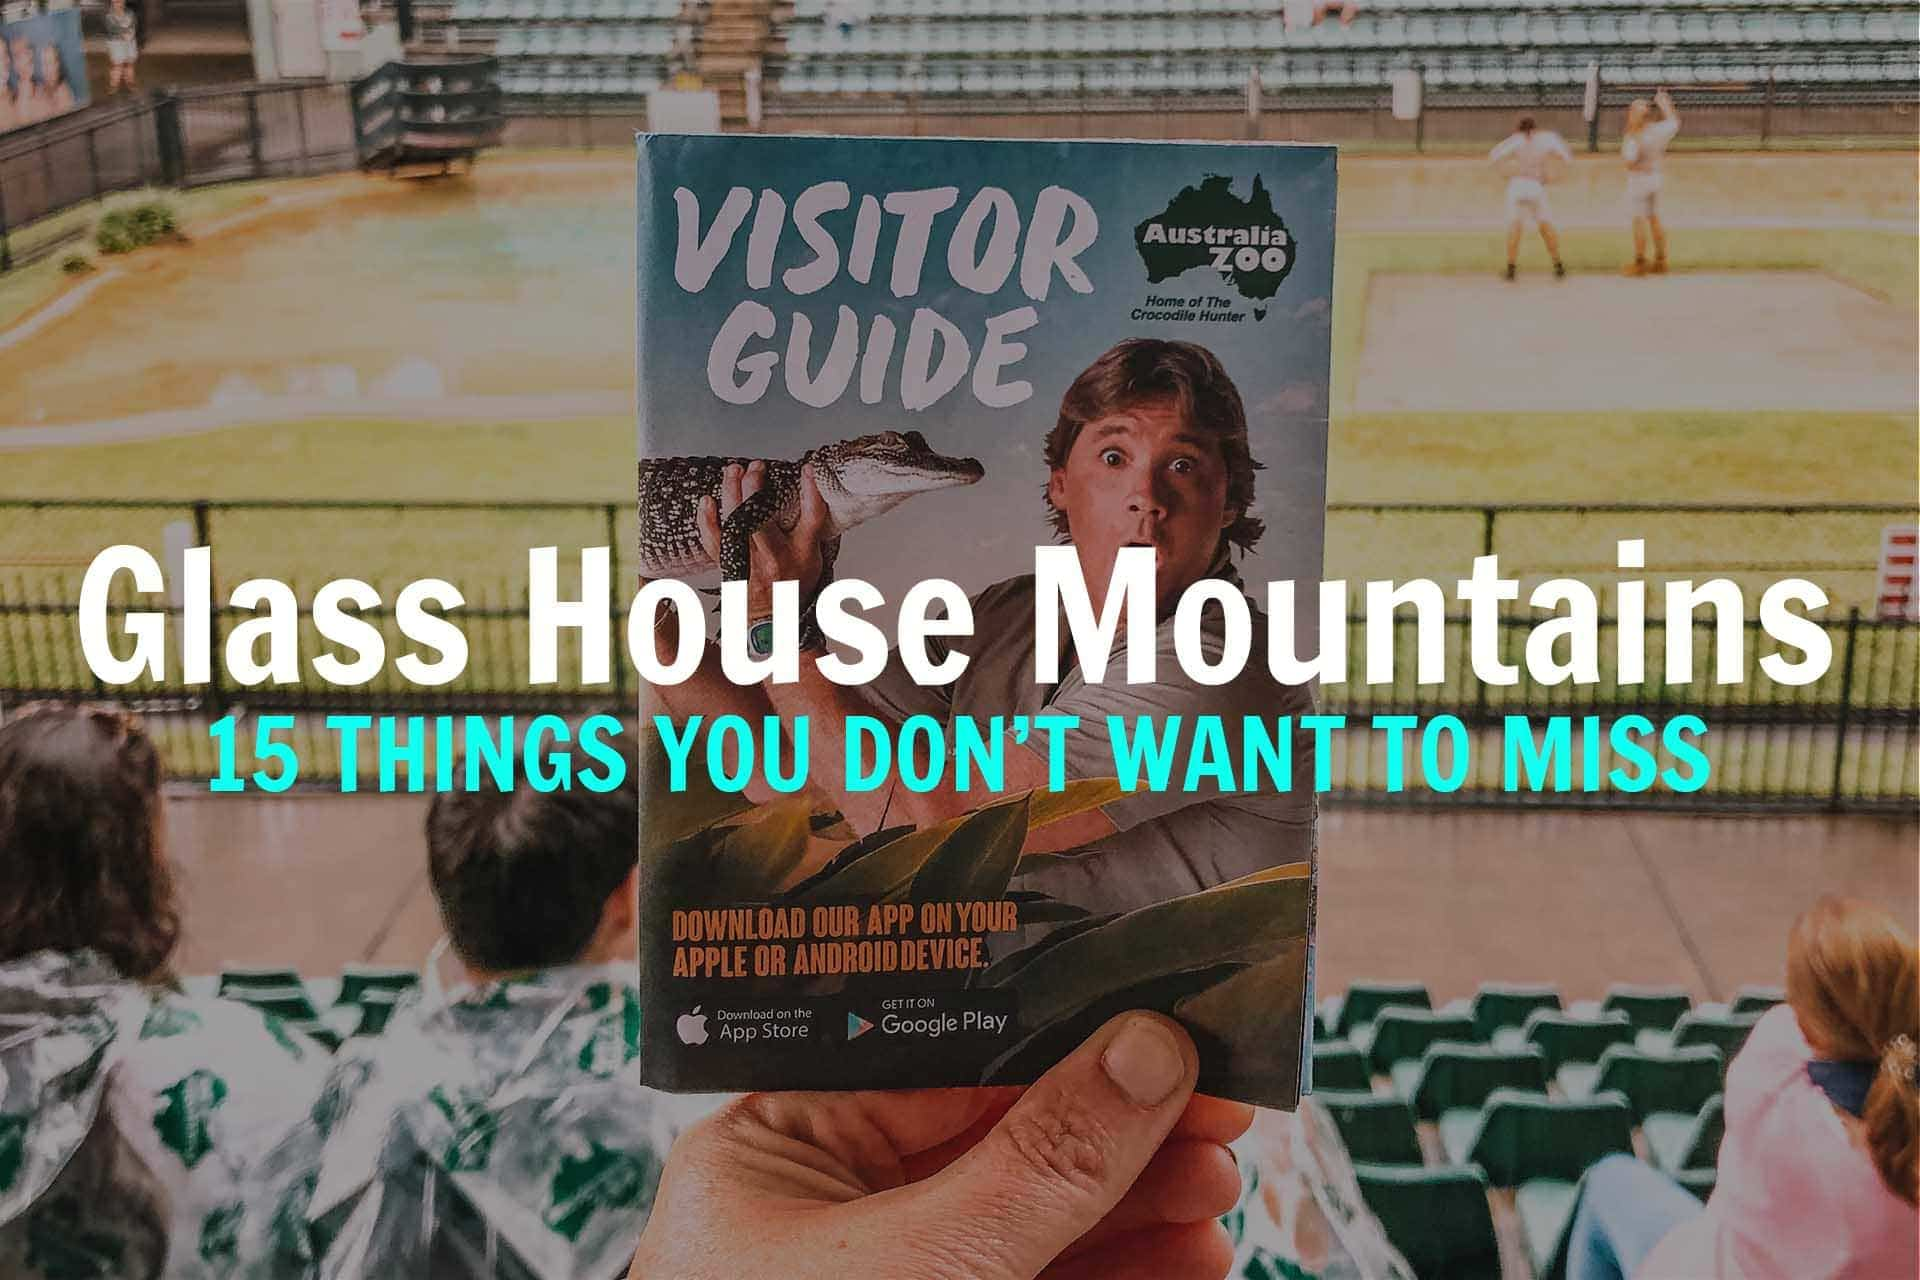 THINGS-TO-DO-IN-GLASS-HOUSE-MOUNTAINS